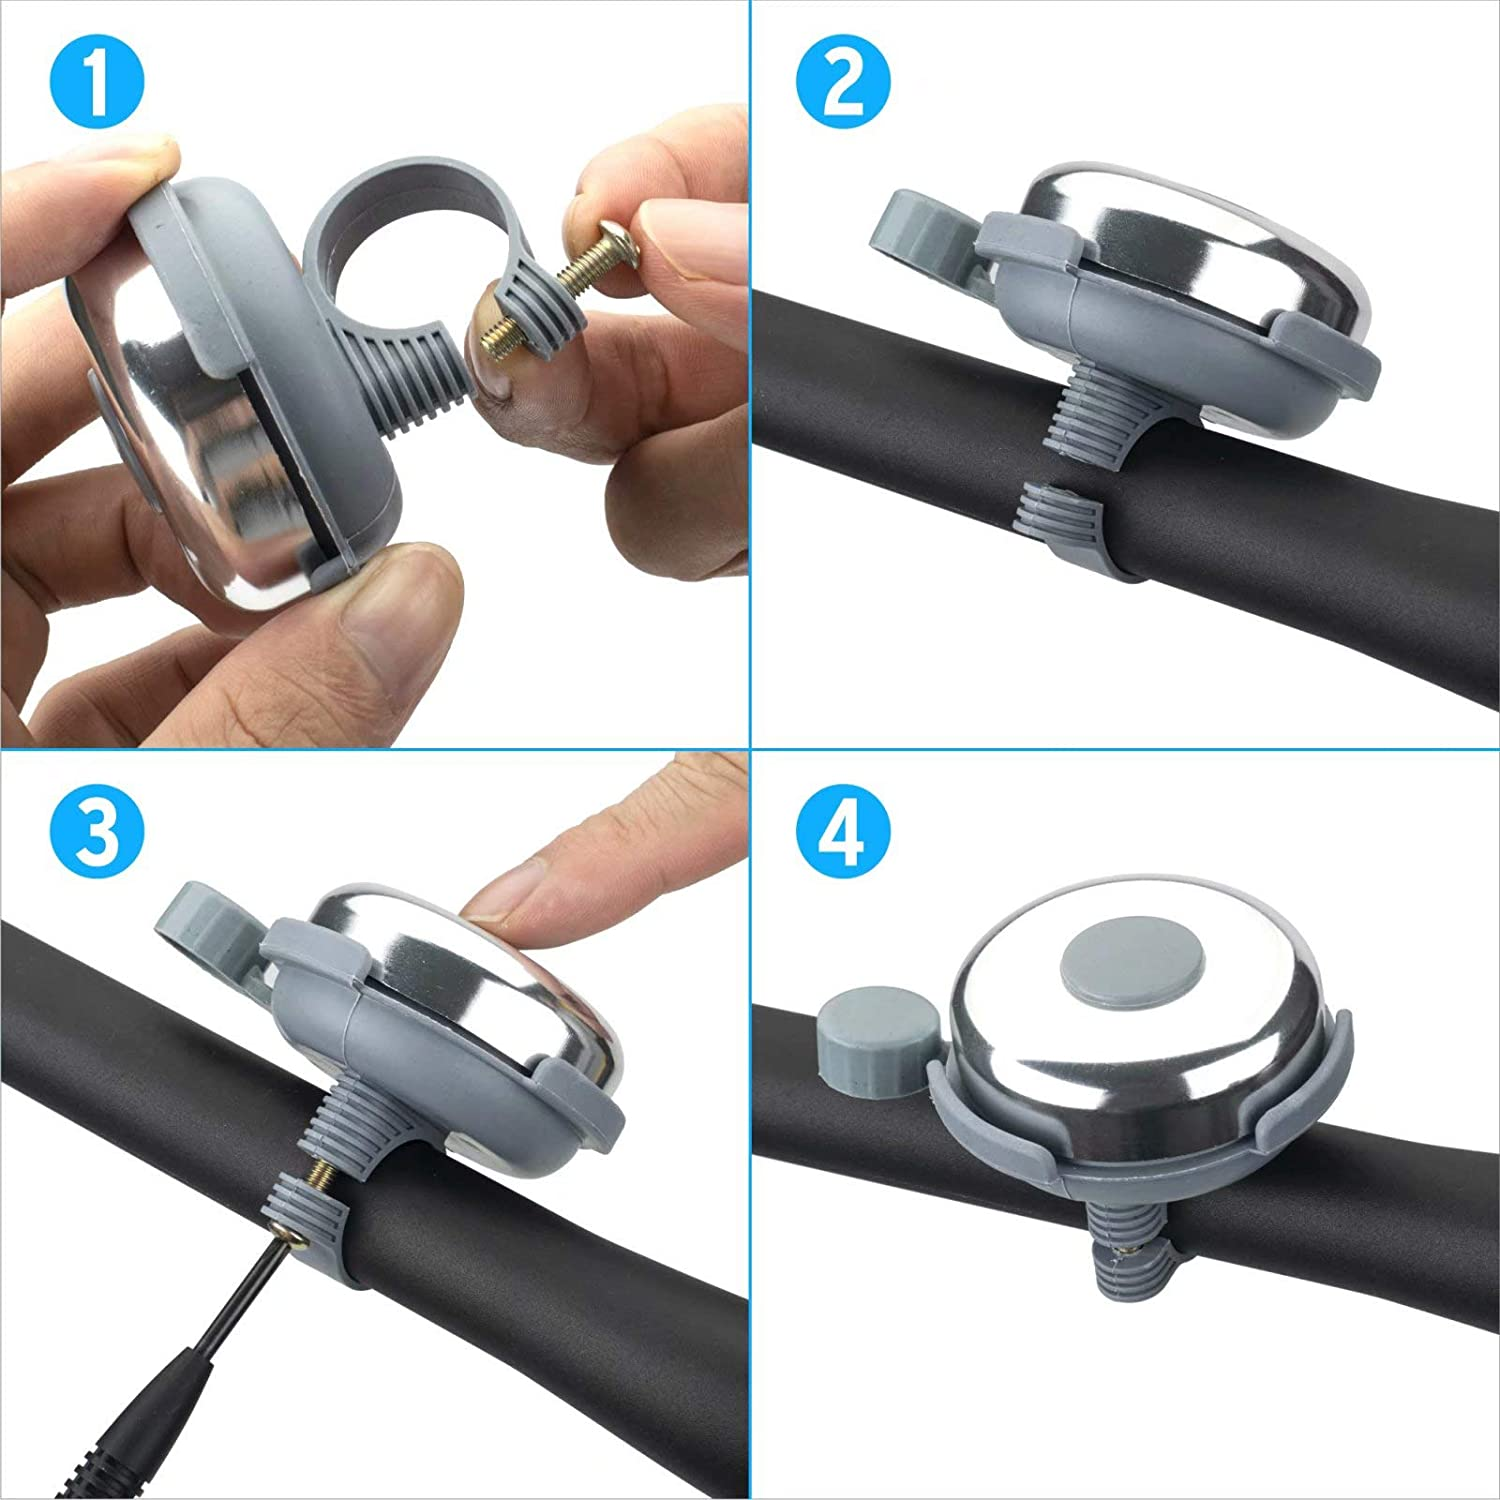 ONLYWIN Bike Bell Right Up for Handlebars Bicycle Bell with Melodious Ring Crisp Lond for Adults Girls Boys Kids Mountain//Road Bike Bell 2 Pack